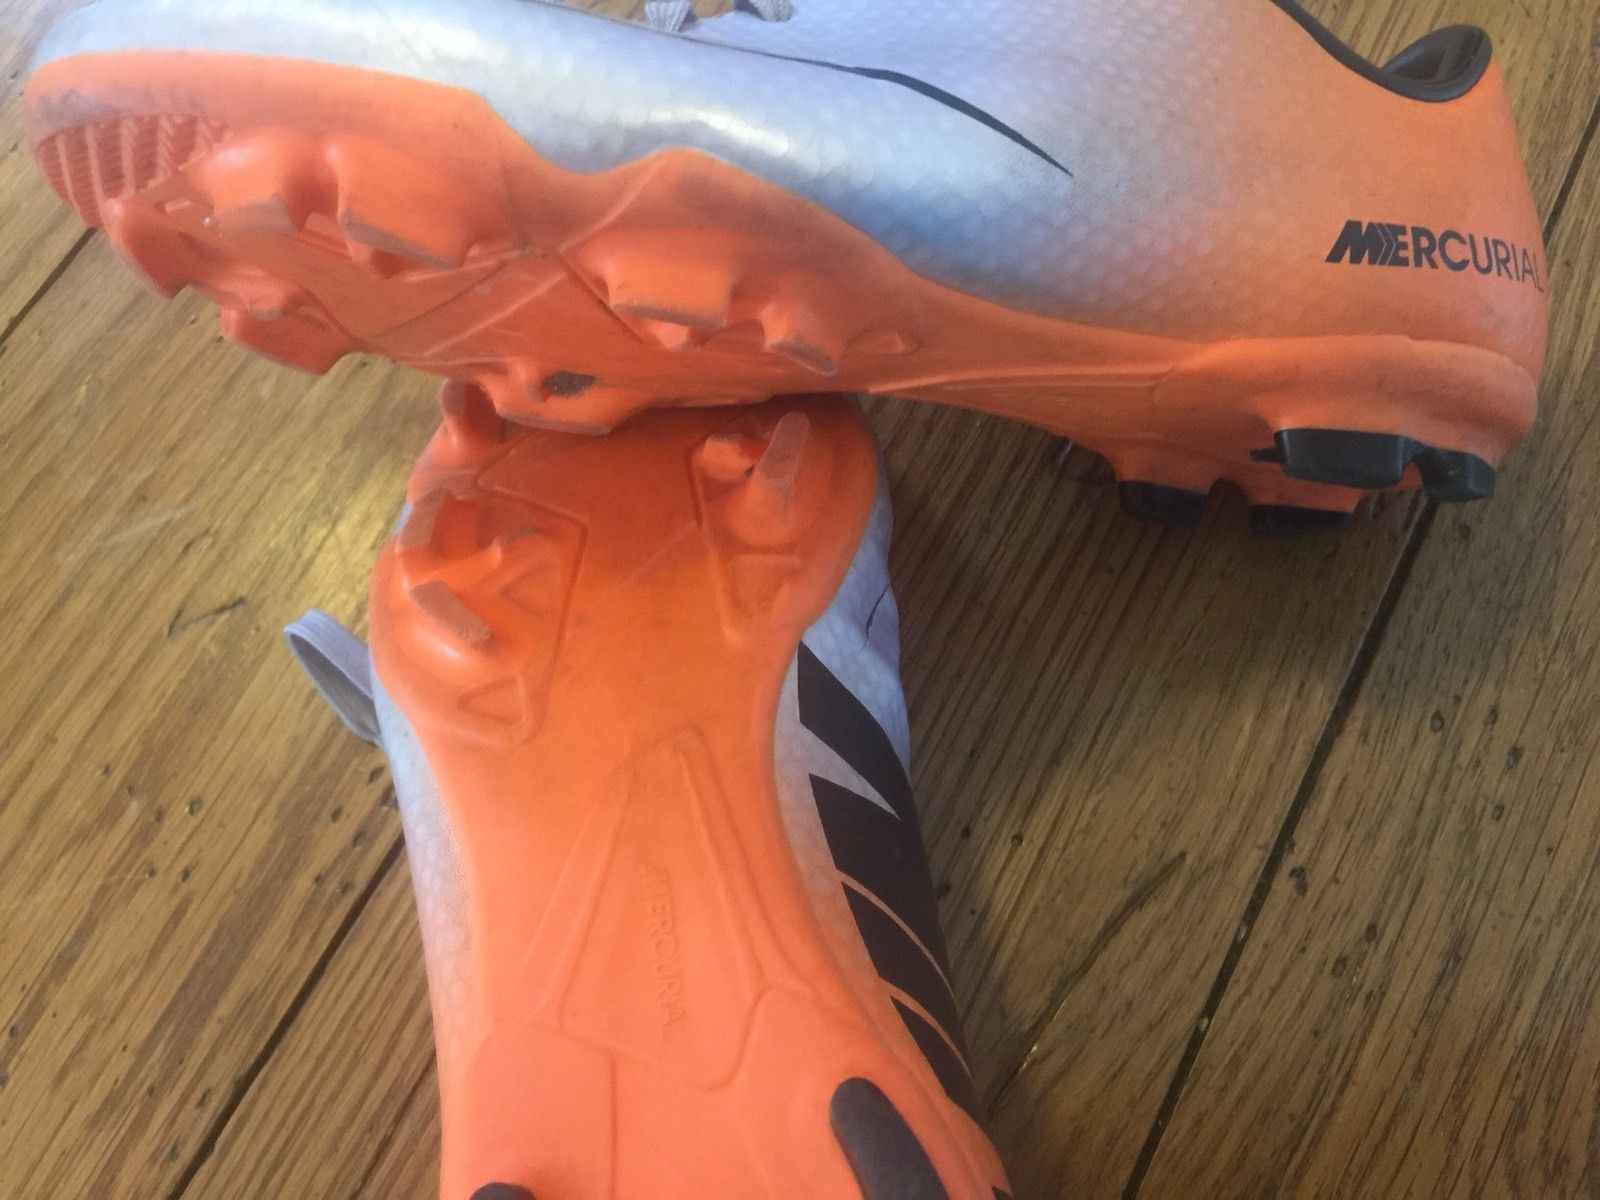 94f2dcc8616b ... Nike Mercurial Soccer Cleats Size 3Y Lavender   Orange Lightweight Shoes